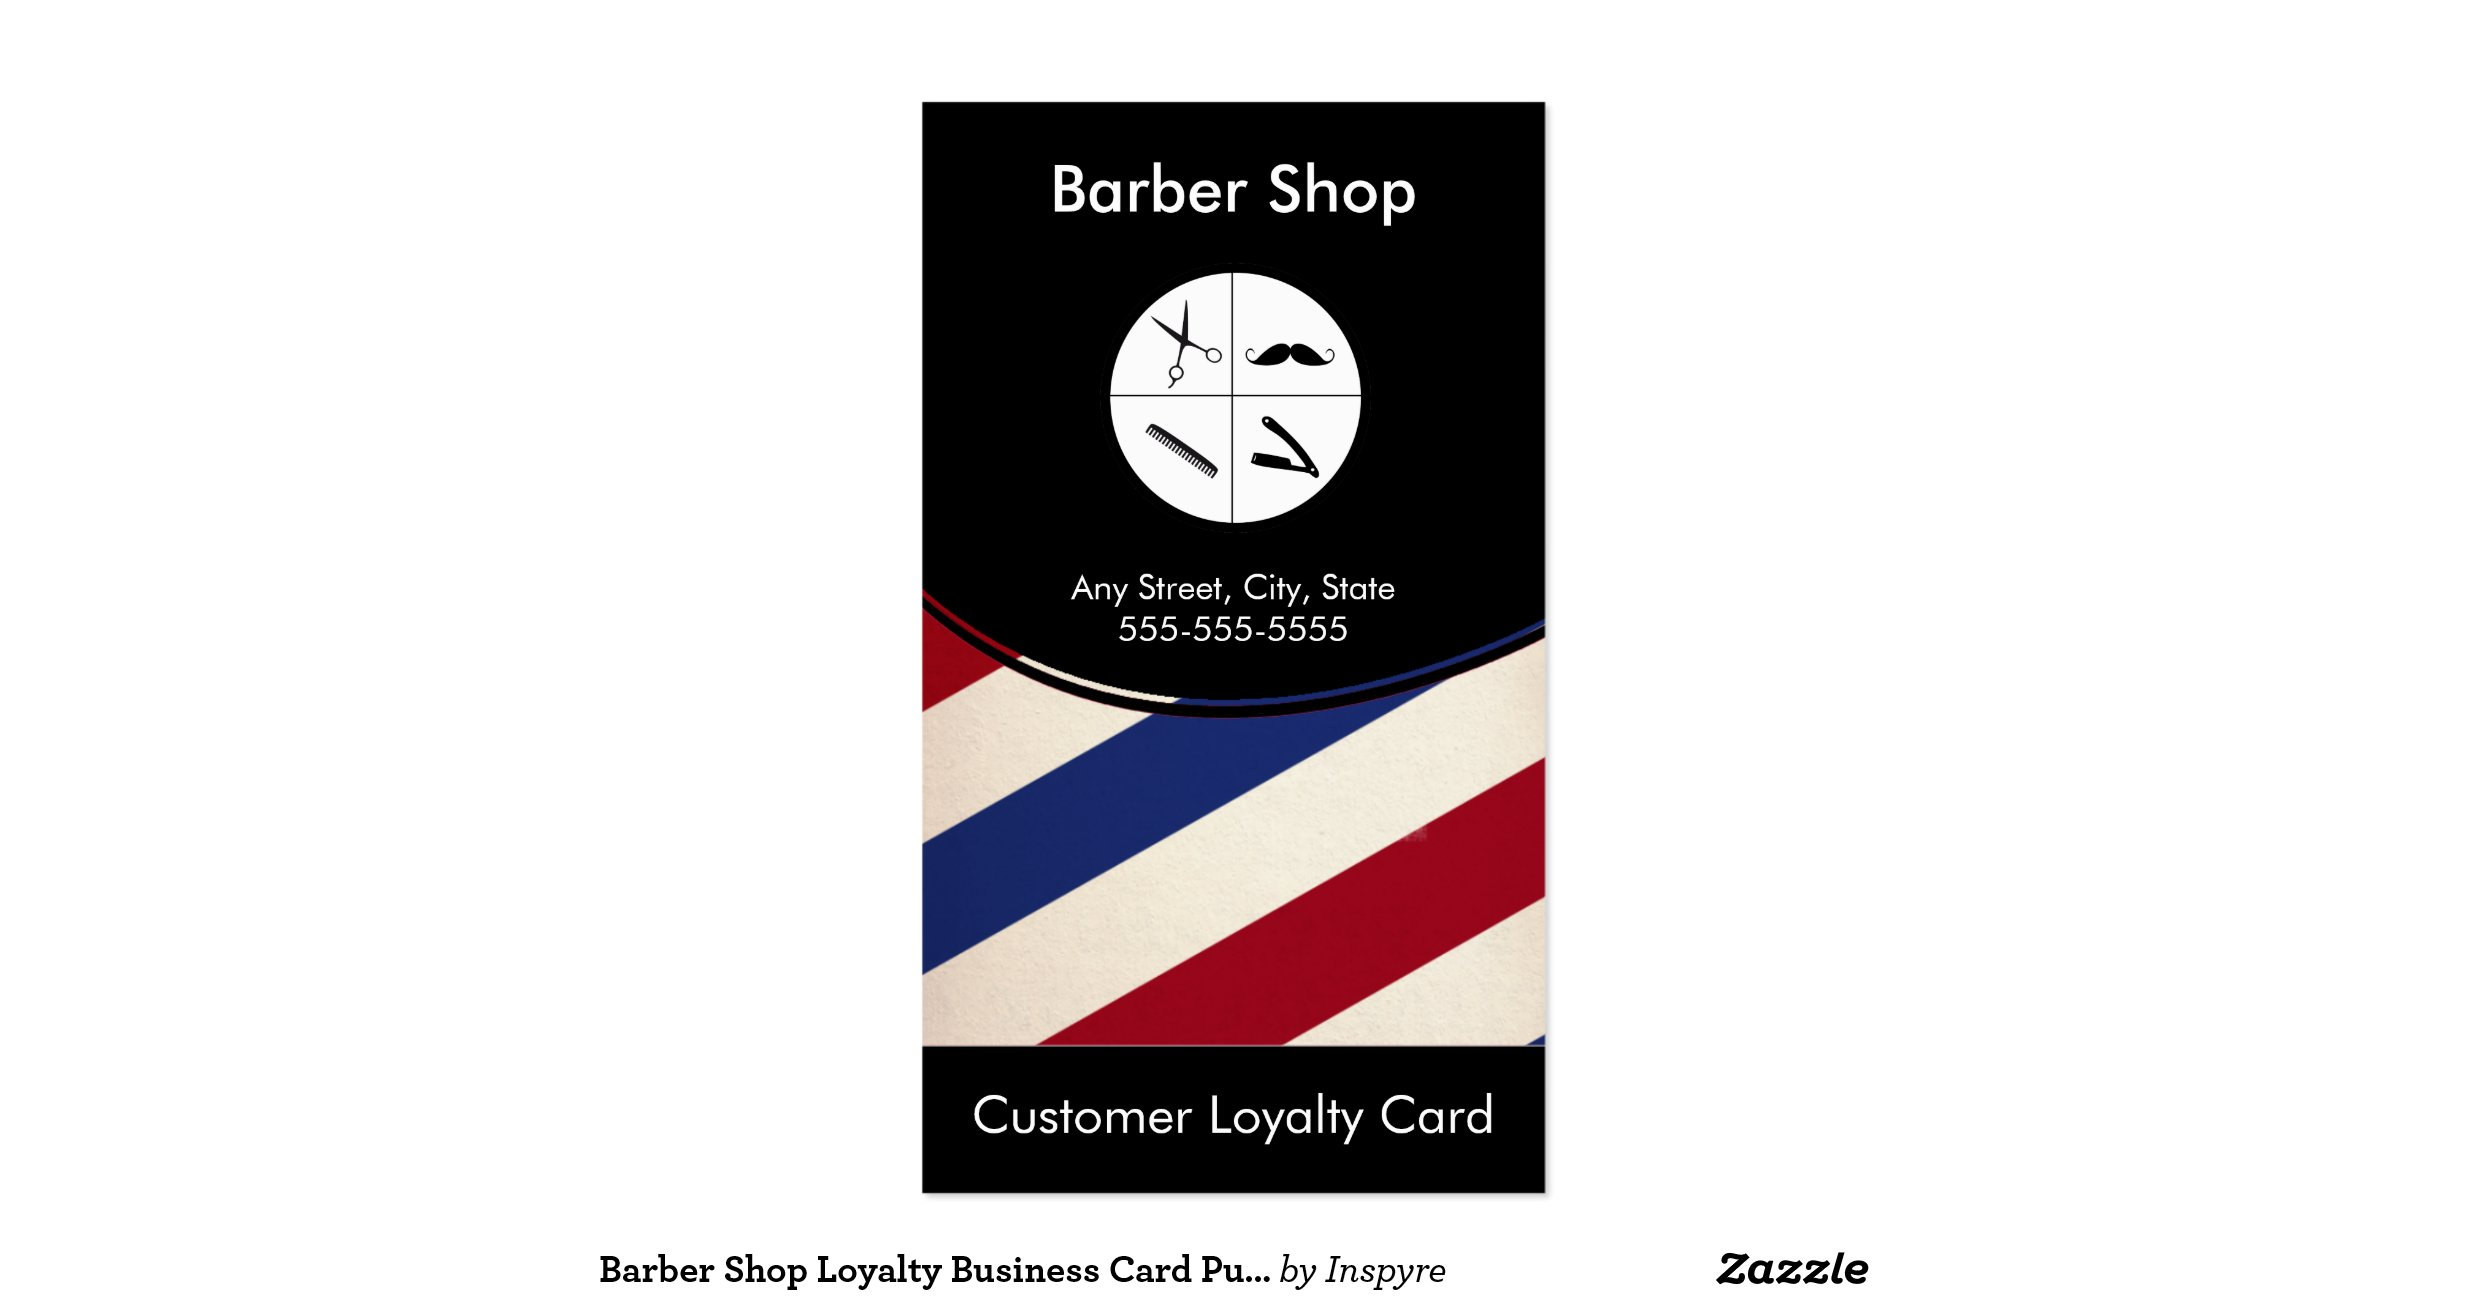 Free vertical business card template business card sample barber shop business cards zazzle reheart Choice Image